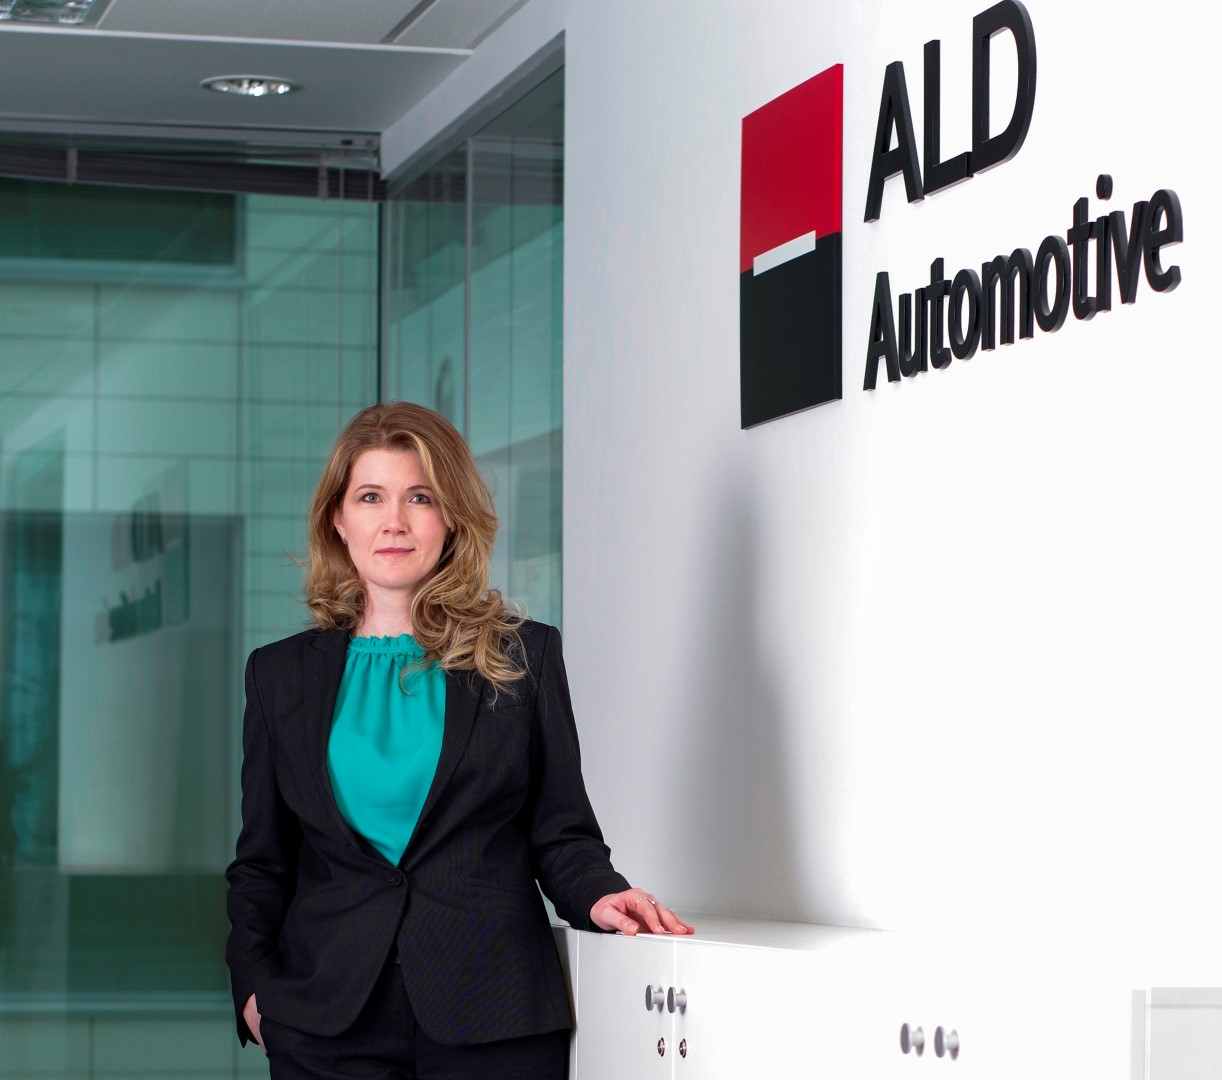 ALD Automotive Romania appoints Daniela Davidescu as Operations Director